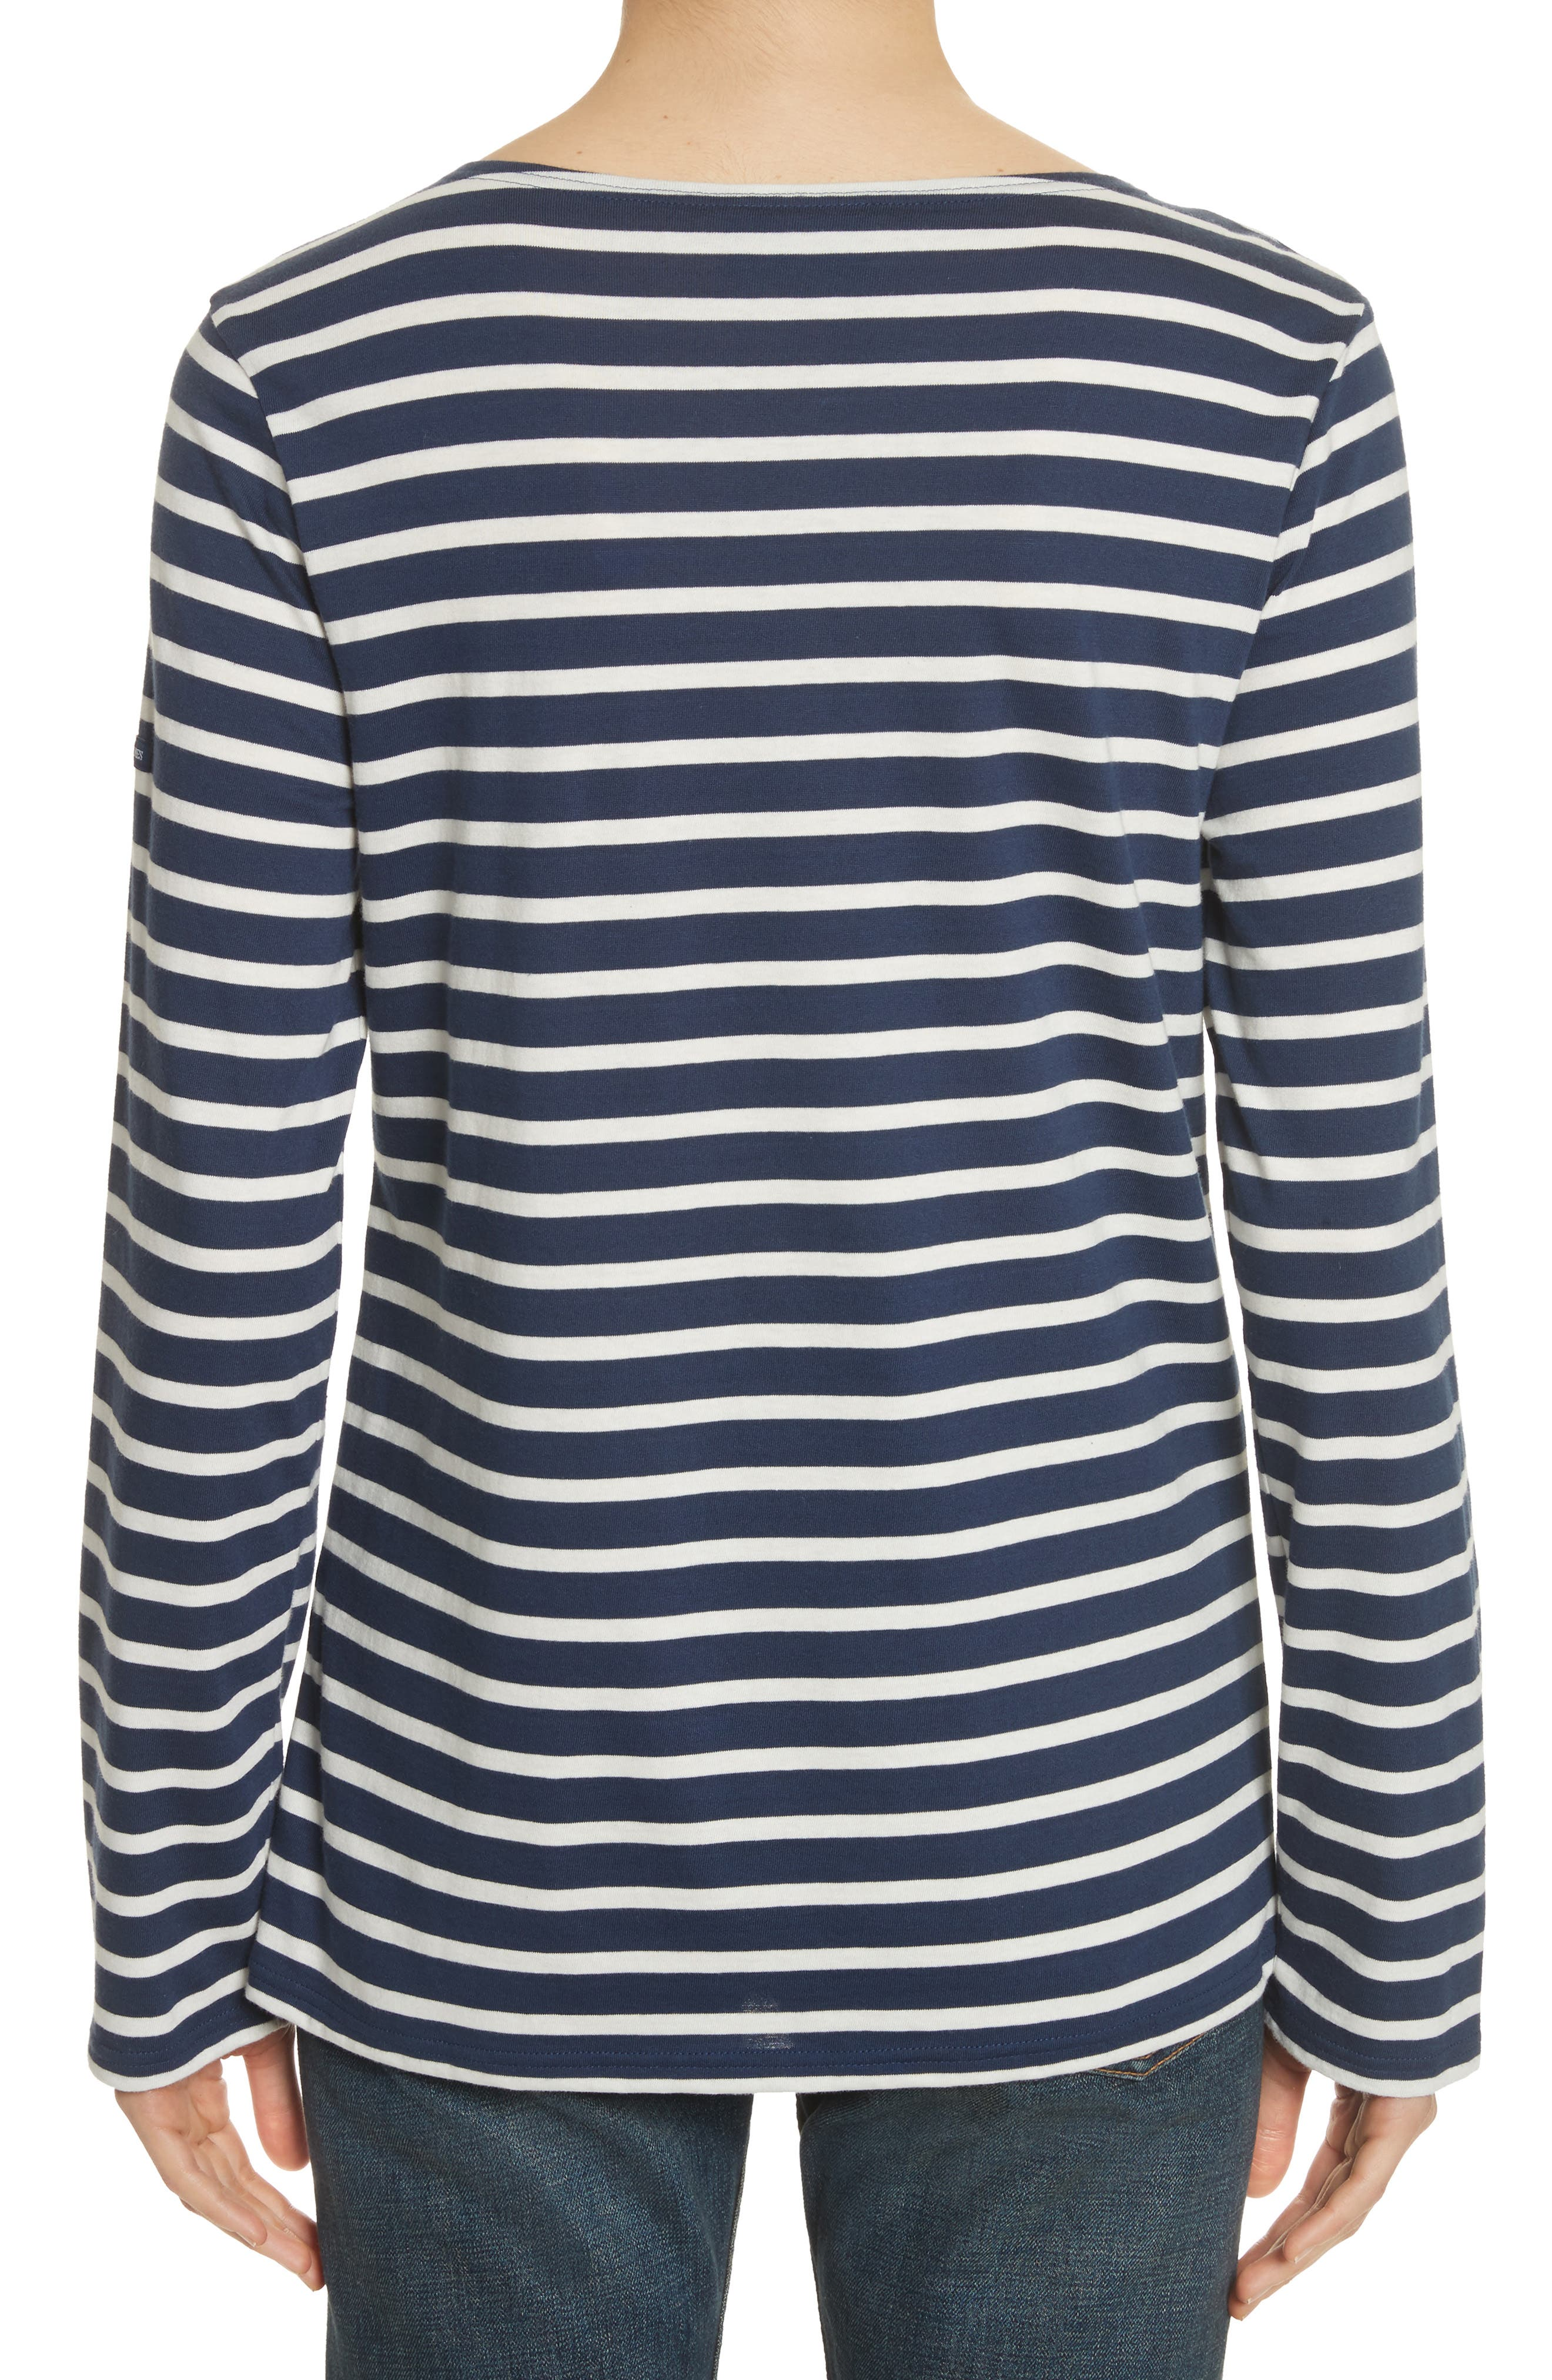 Alternate Image 3  - Saint James Minquiers Moderne Striped Sailor Shirt (Unisex)